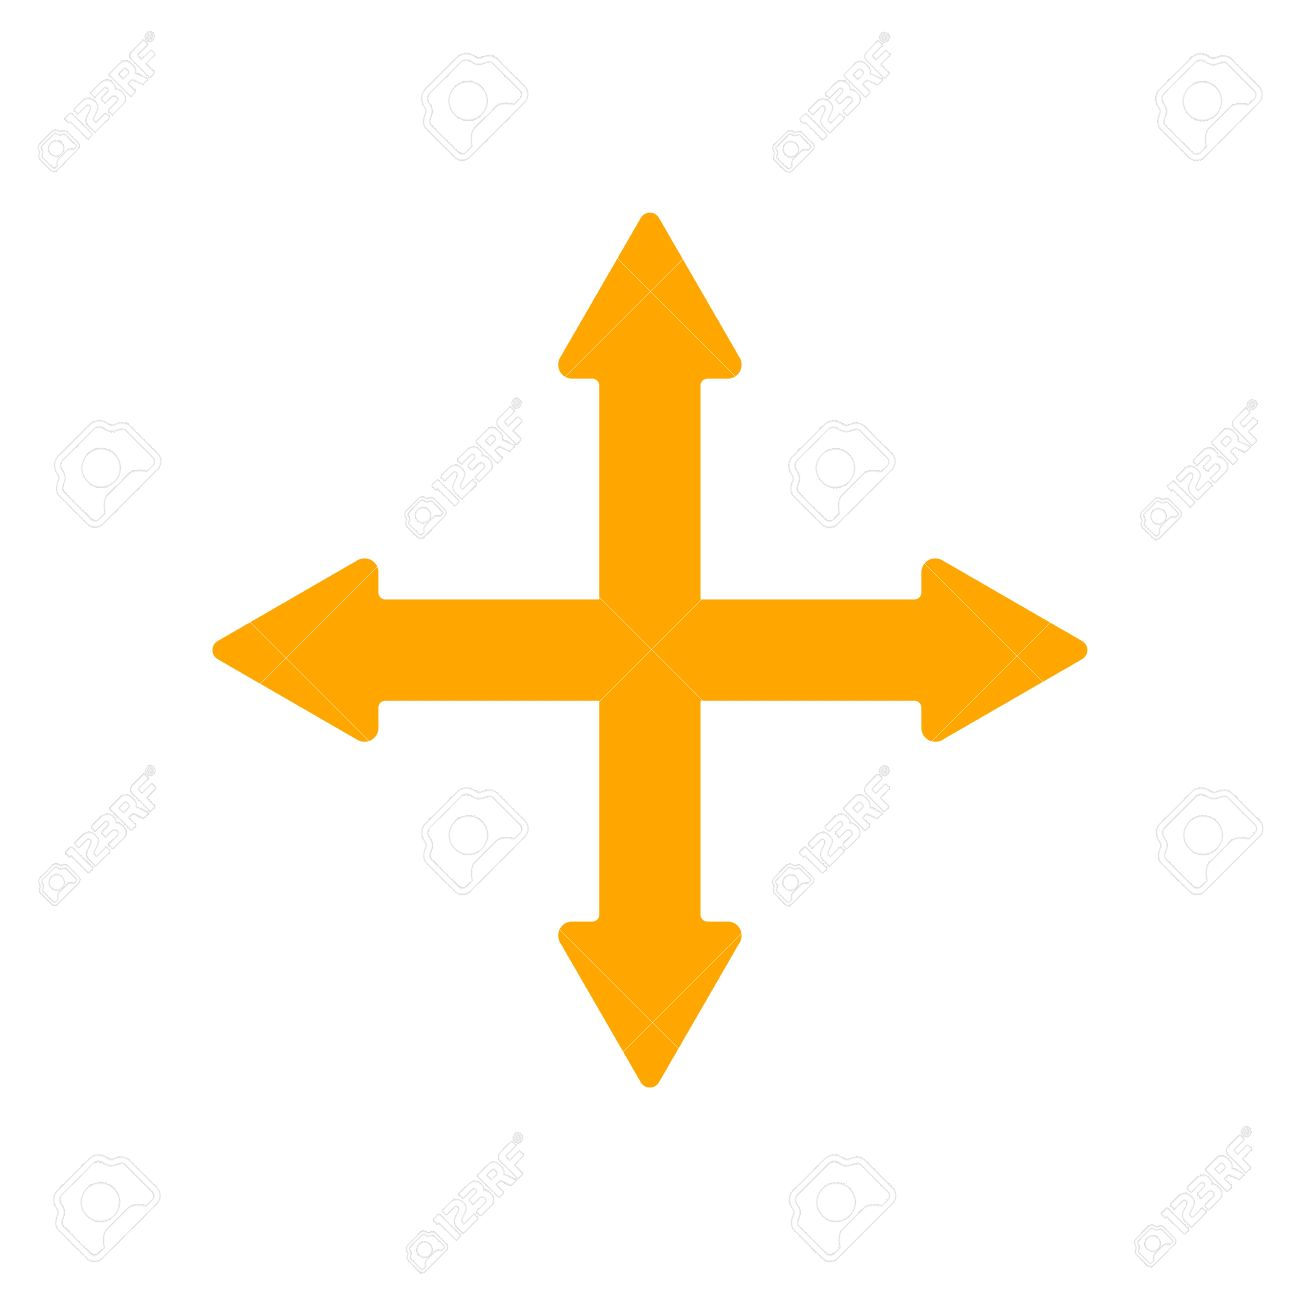 4 Crossed Arrows Pointing North, South, East and West Stock Photo - 3290676